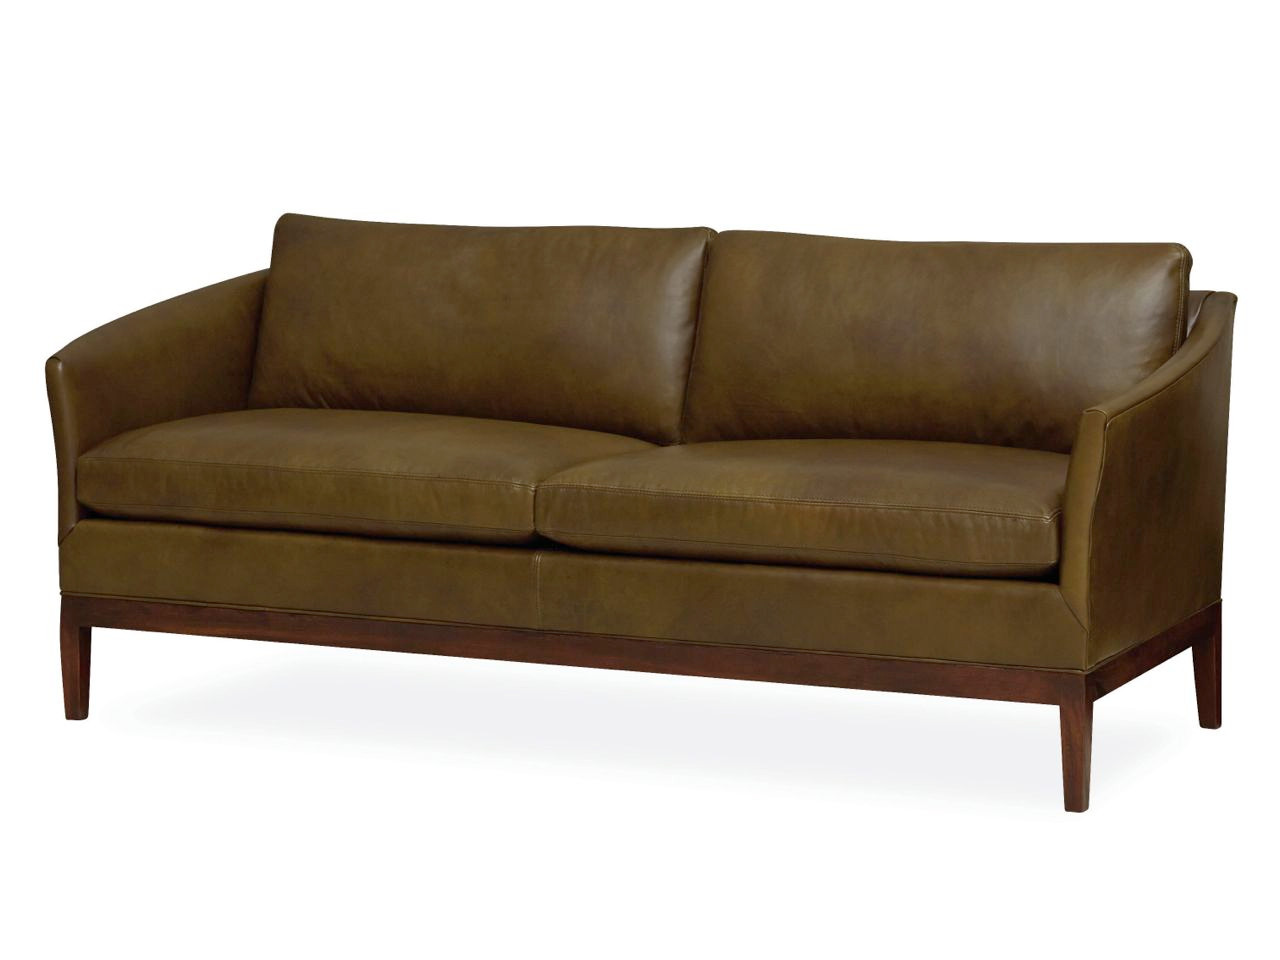 Hester Leather Apartment Sofa | Leather Apartment Sofas & Leather ...